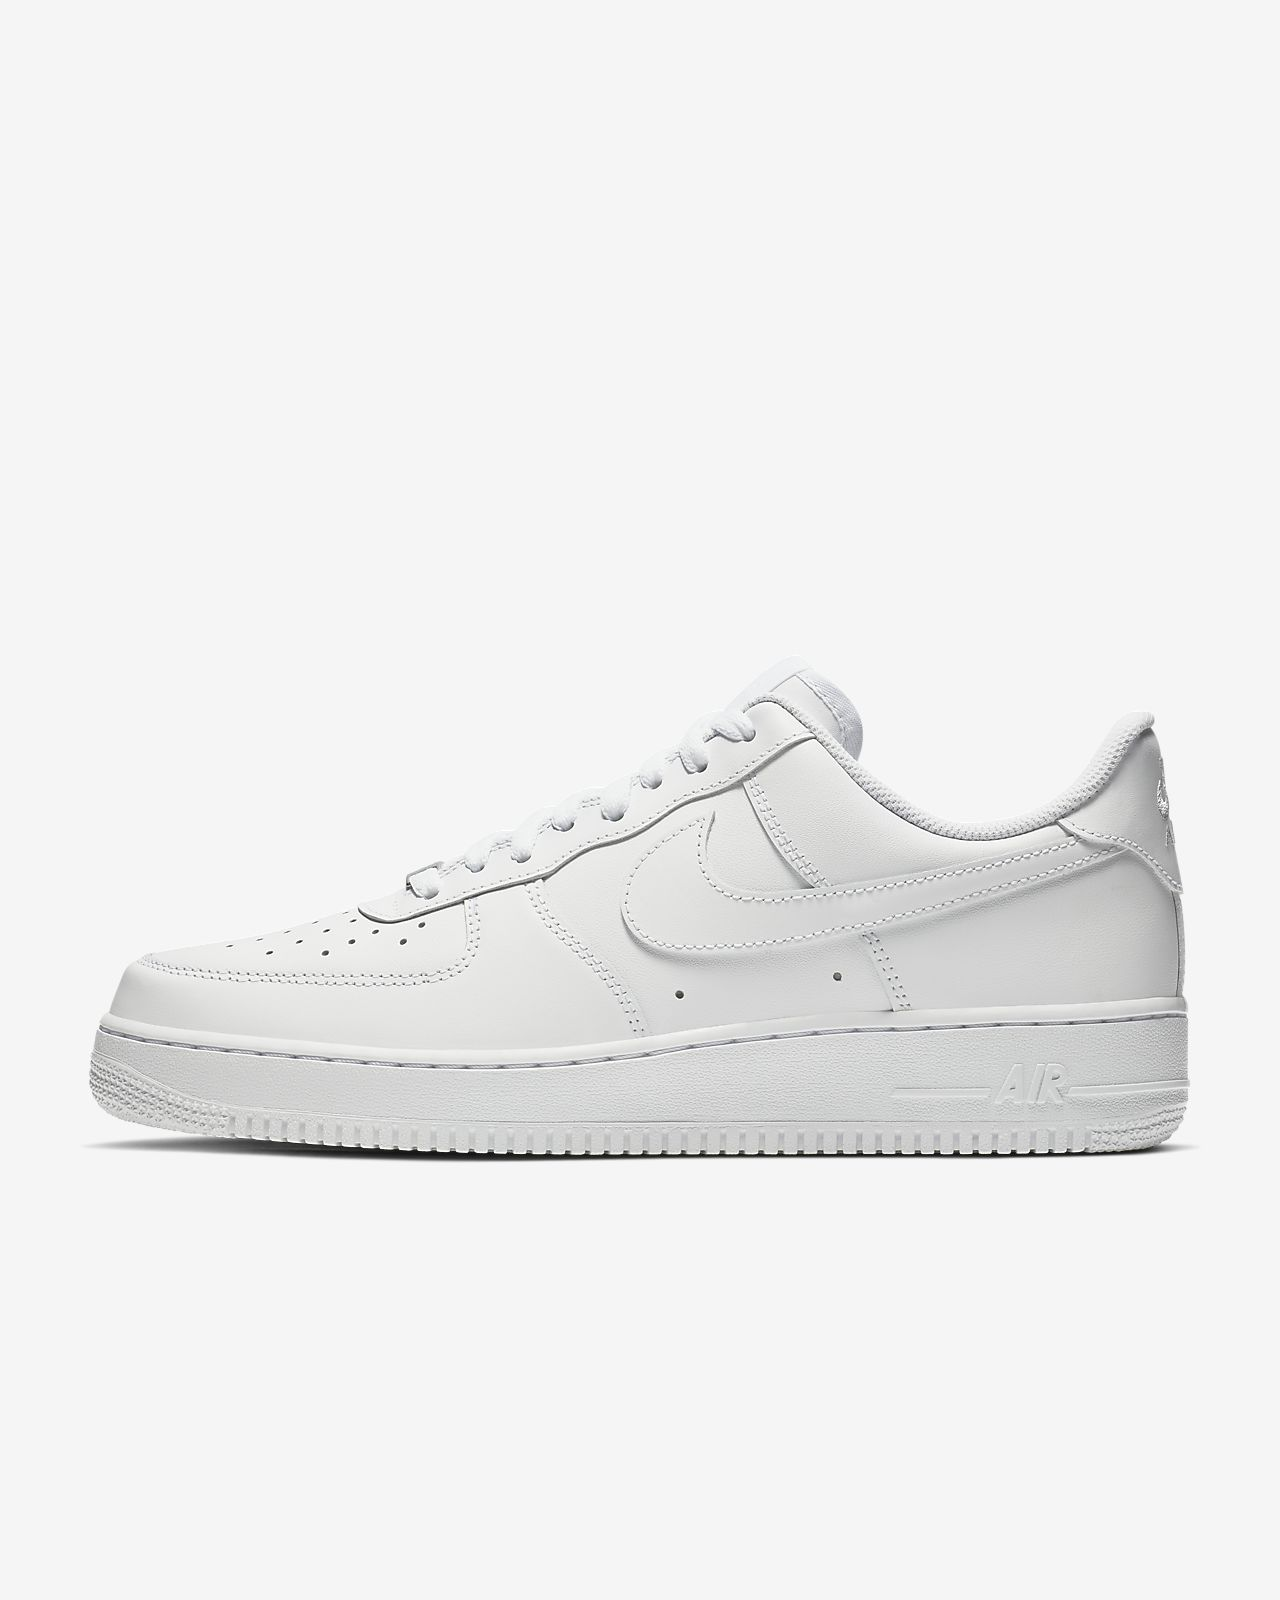 newest 6e38f 3ec07 ... Nike Air Force 1  07 sko